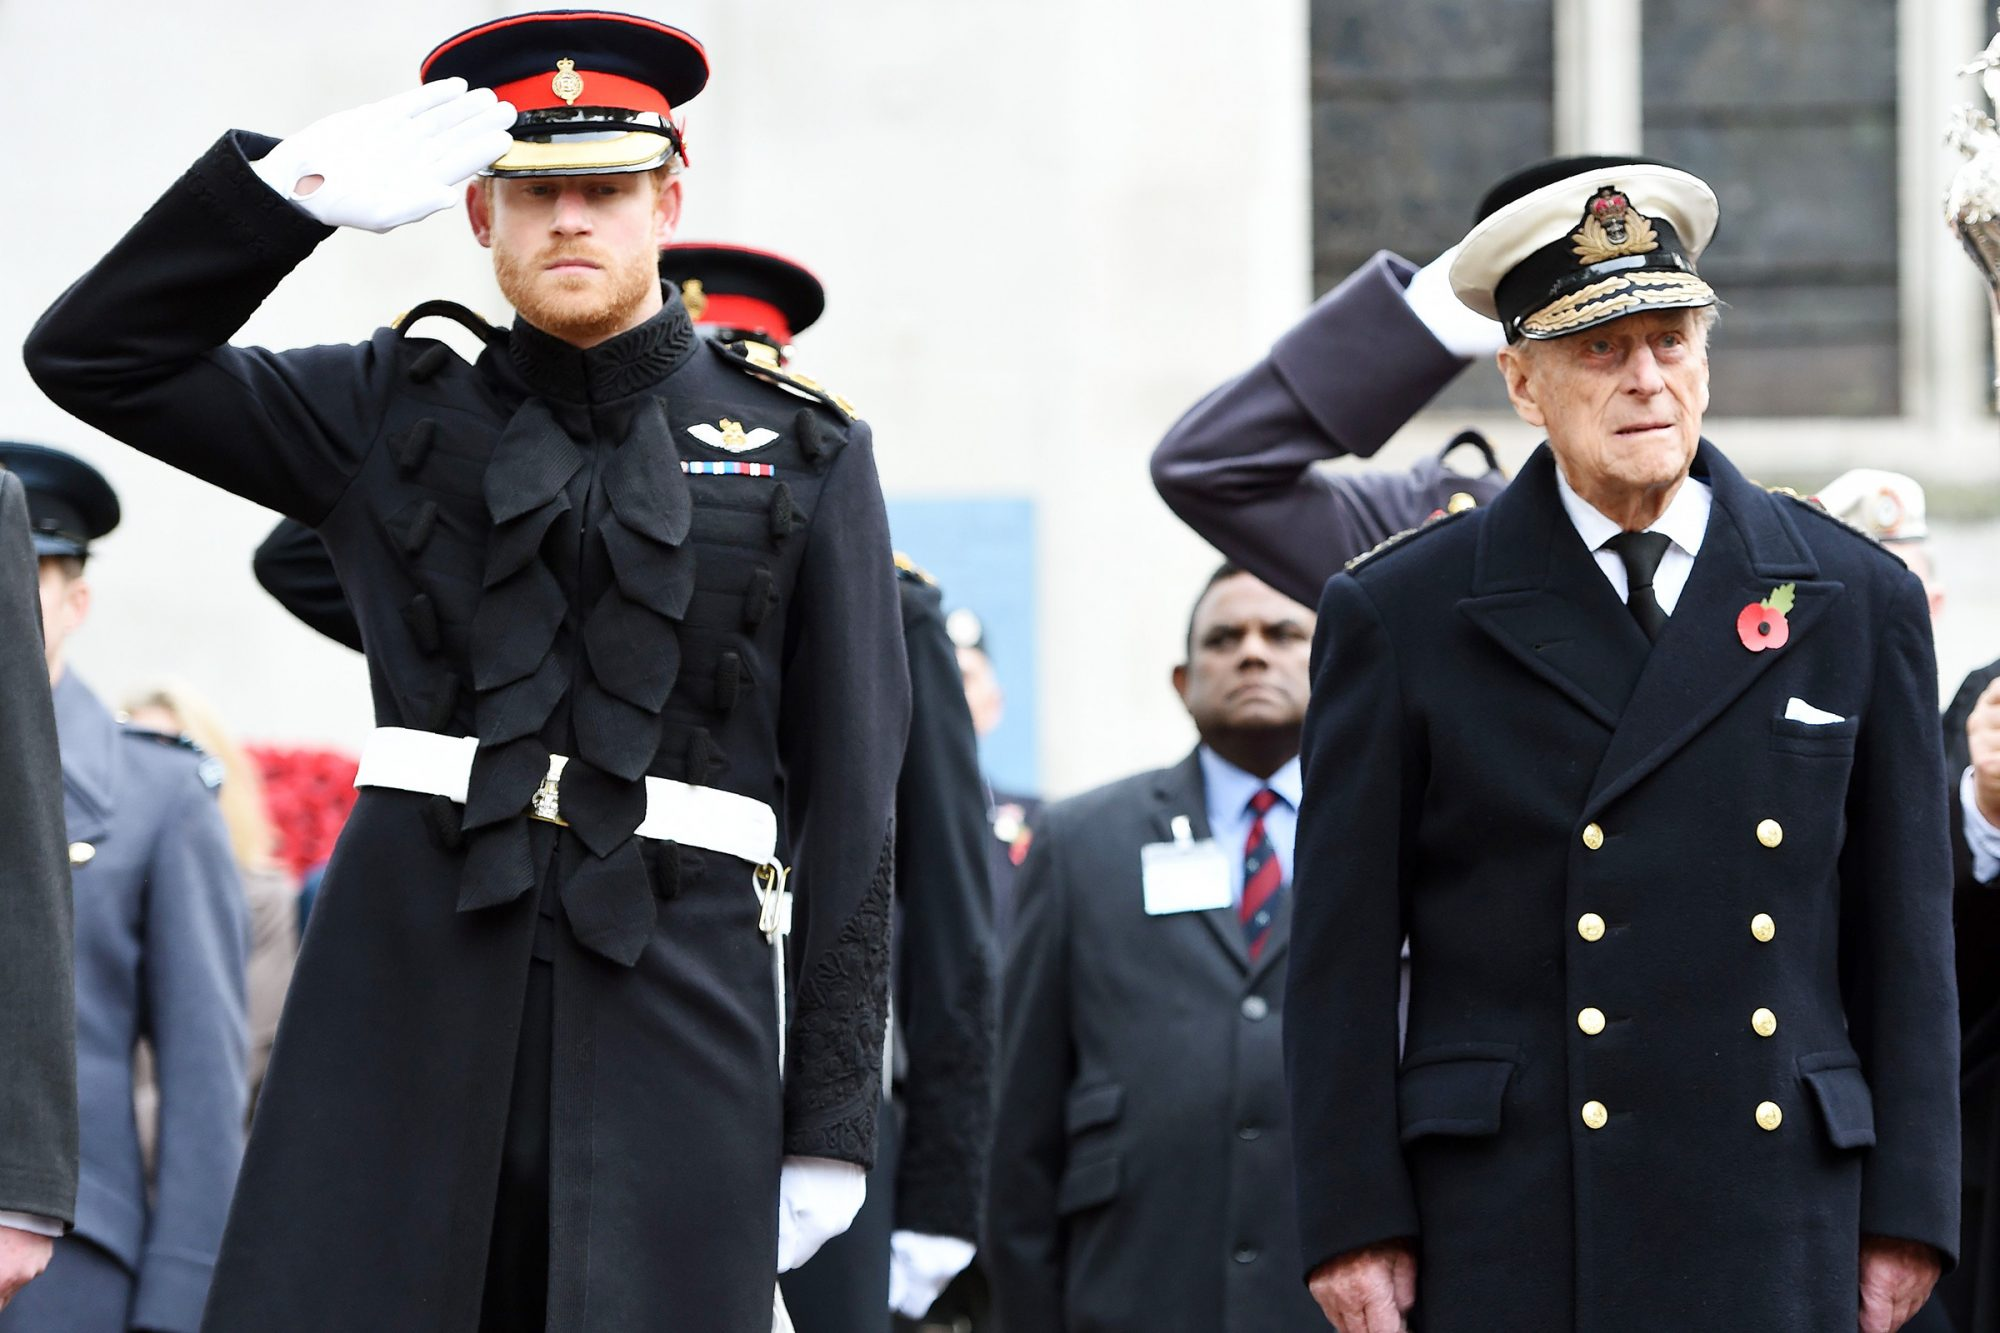 Britain's Prince Harry (L) salutes as he stands alongside his grandfather Britain's Prince Philip, Duke of Edinburgh, during their visit to the Field of Remembrance at Westminster Abbey in central London on November 10, 2016